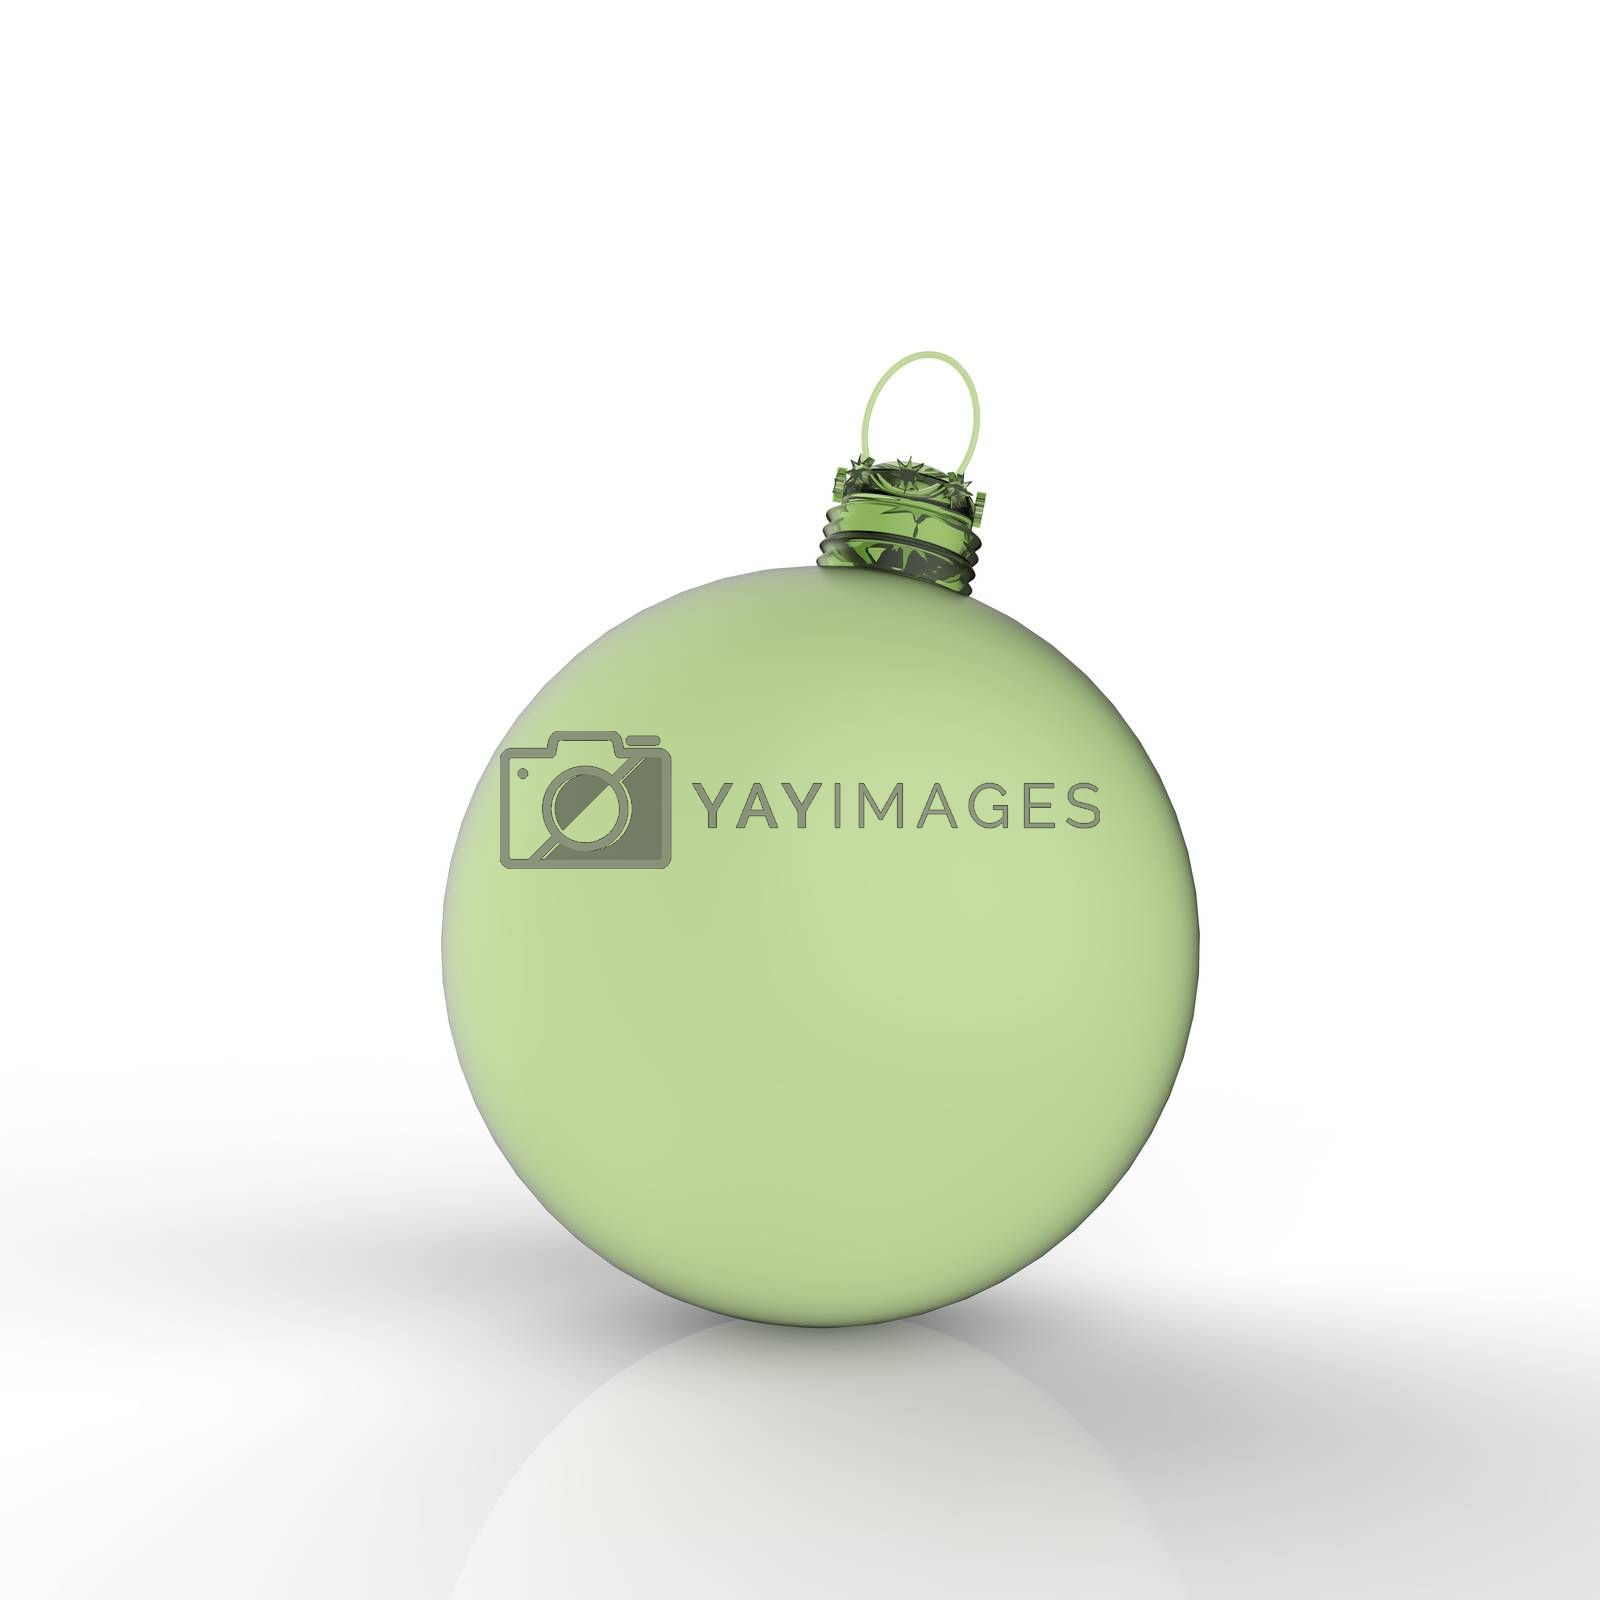 Royalty free image of 3d Christmas ball ornaments on white background  by everythingpossible